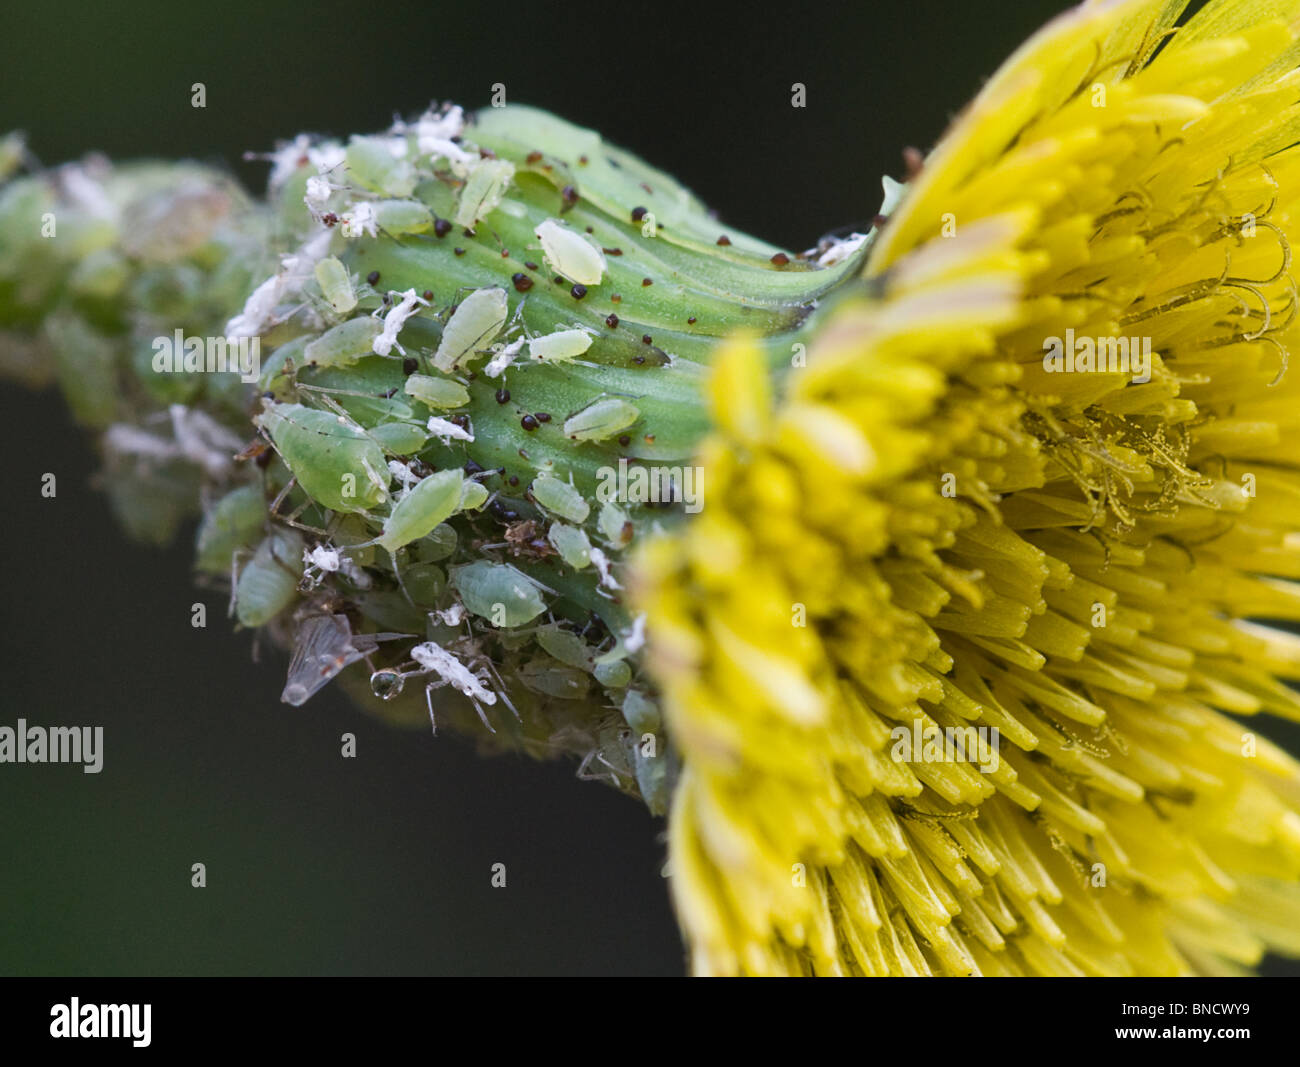 Aphids (Green fly) and White fly on a Prickly Sow-thistle. - Stock Image